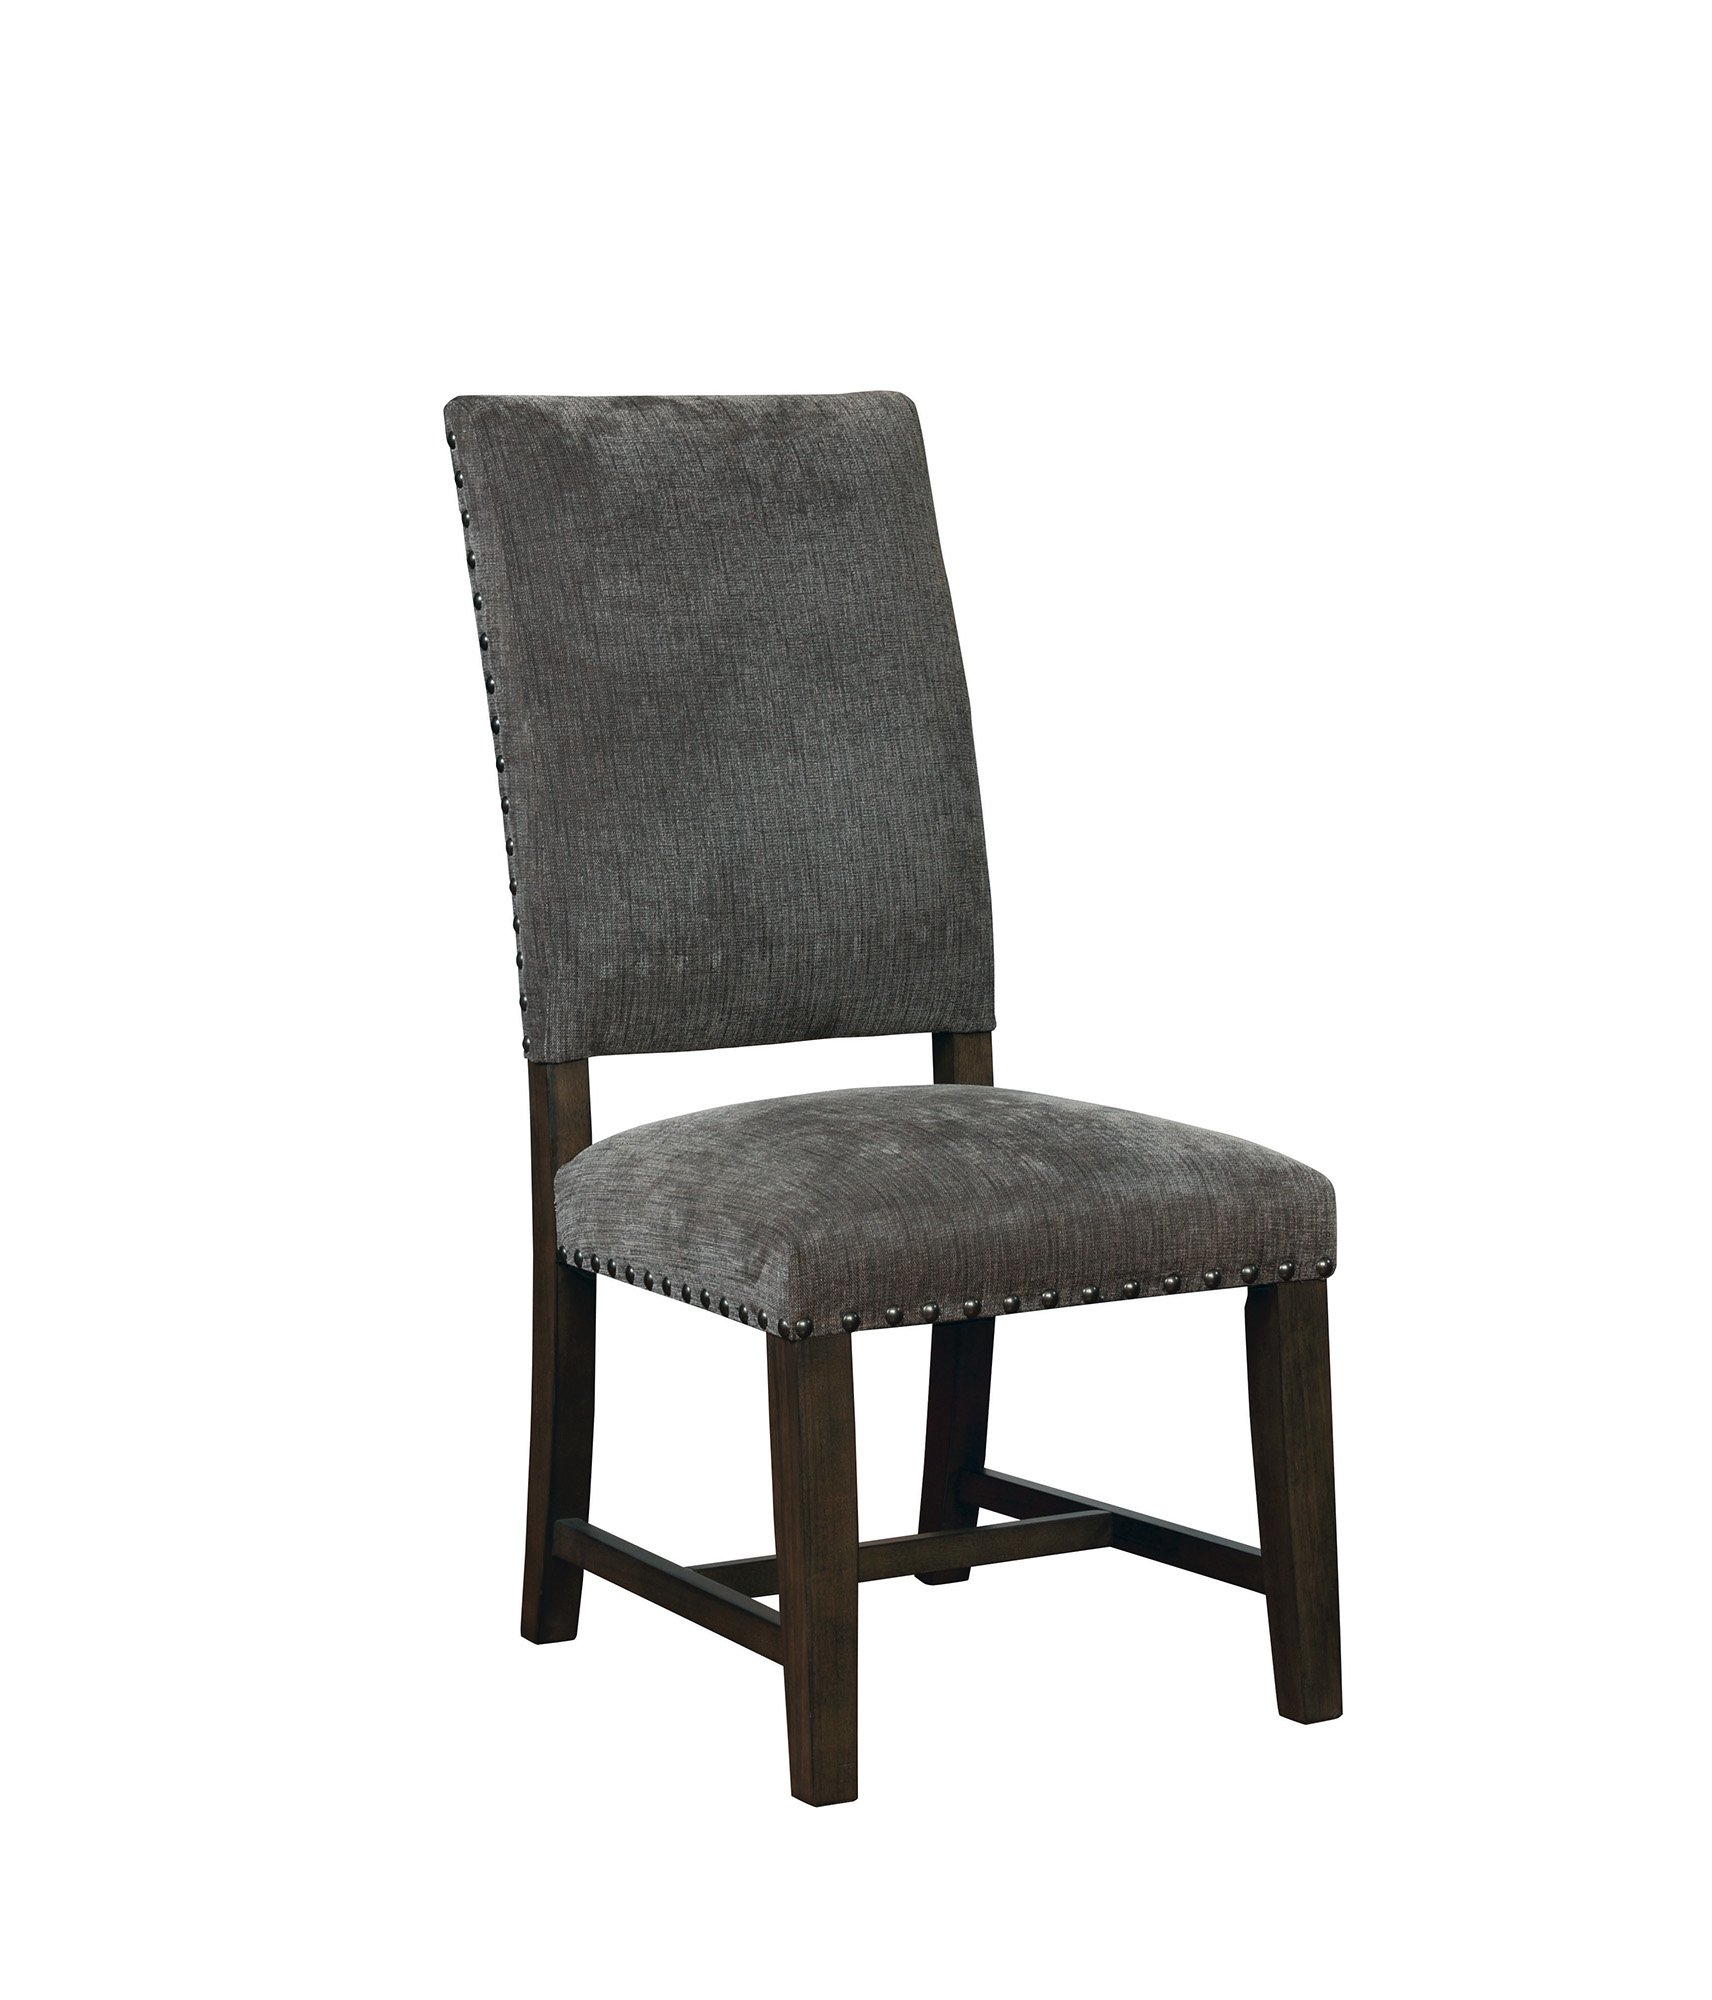 Upholstered Parson Side Chairs Warm Grey (Set of 2) by Scott Living (Image #3)